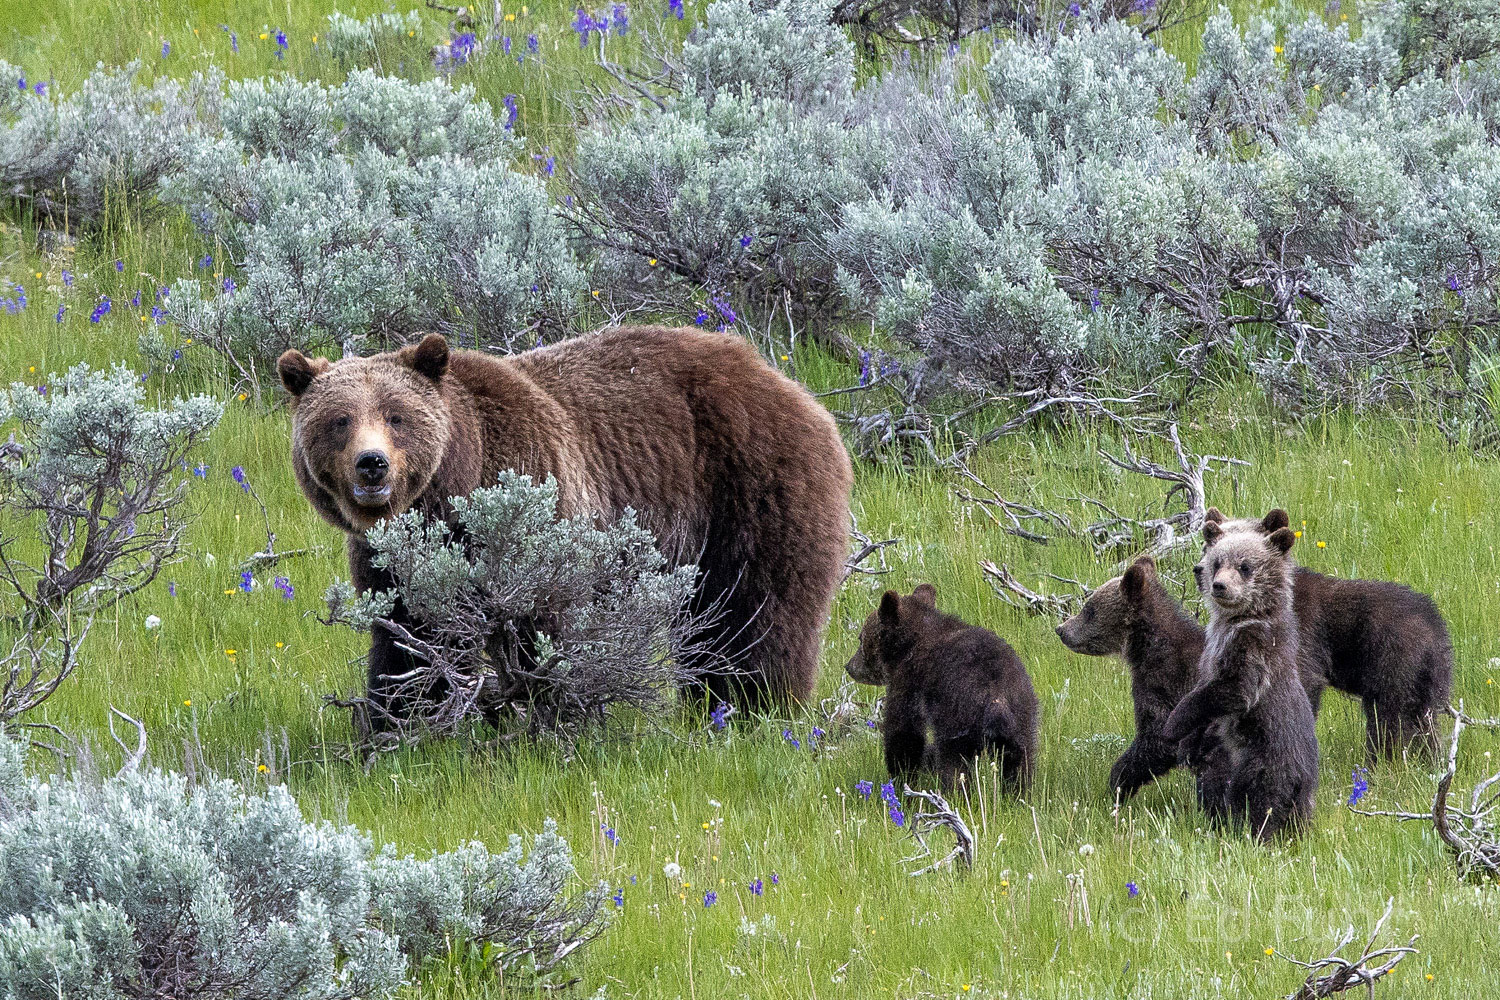 Grizzly 399 and her quad cubs search for food in the sage meadow below.